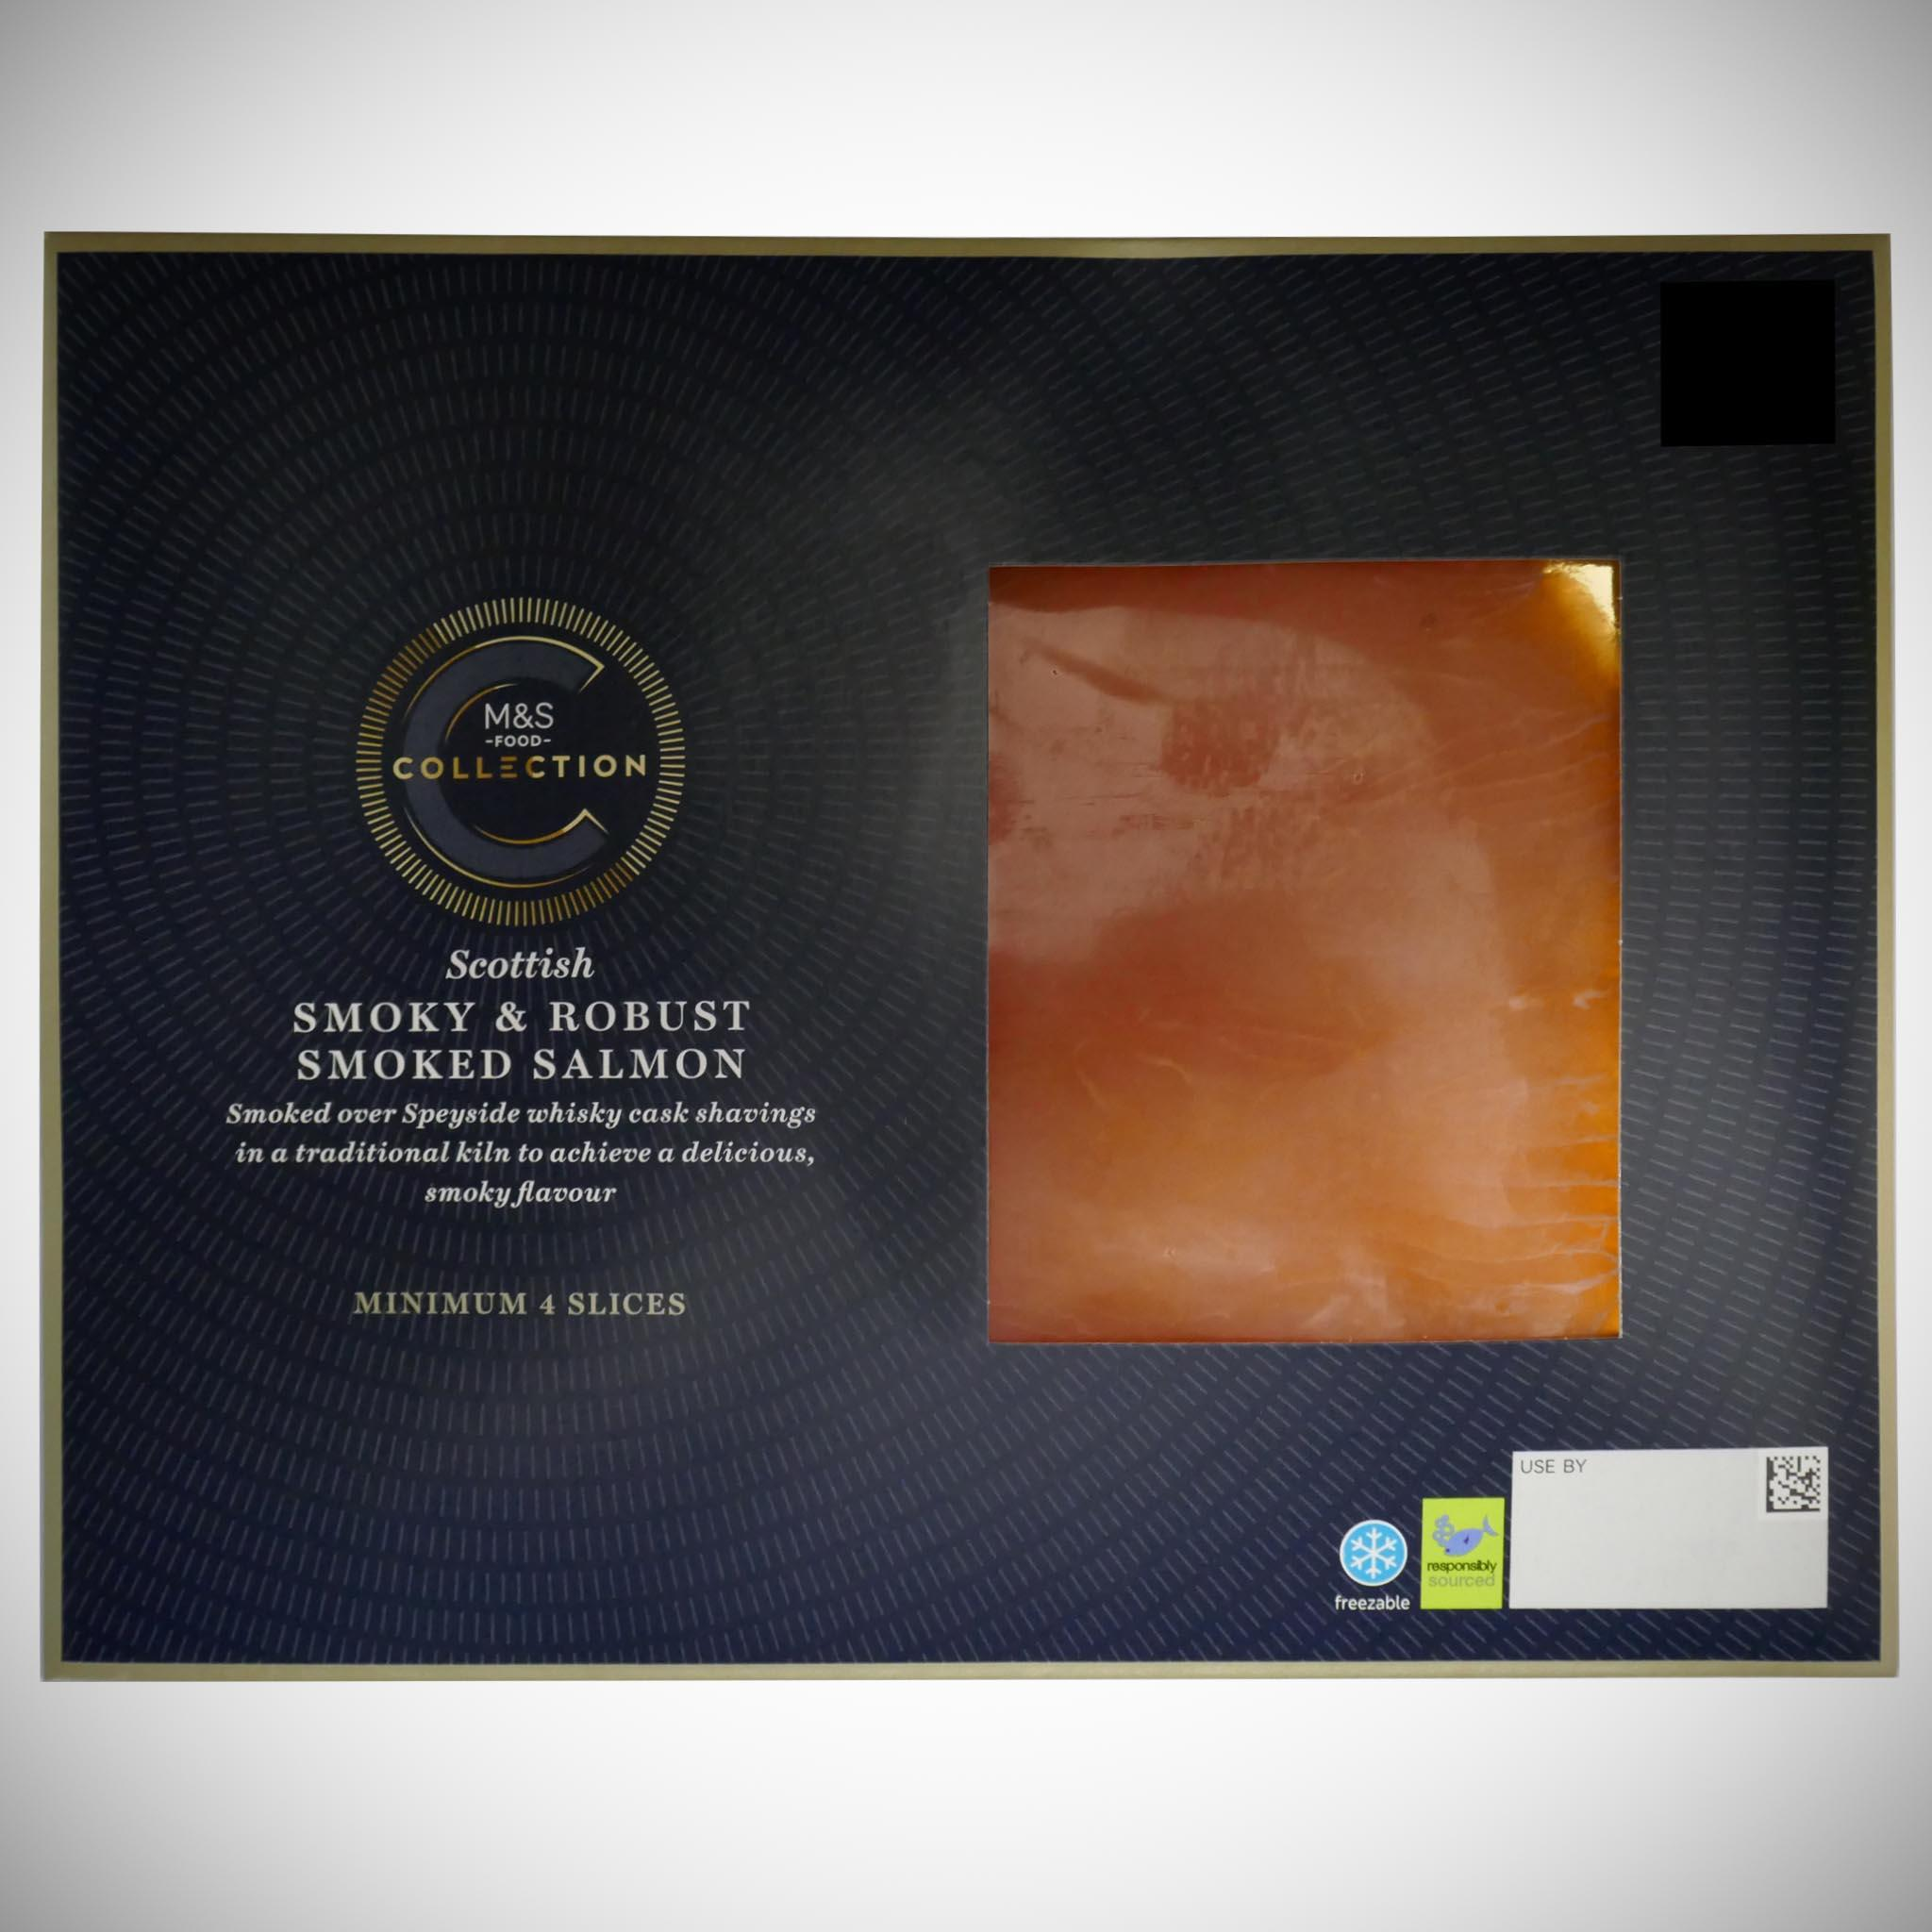 Smoky & Robust Scottish Lochmuir Smoked Salmon 100g